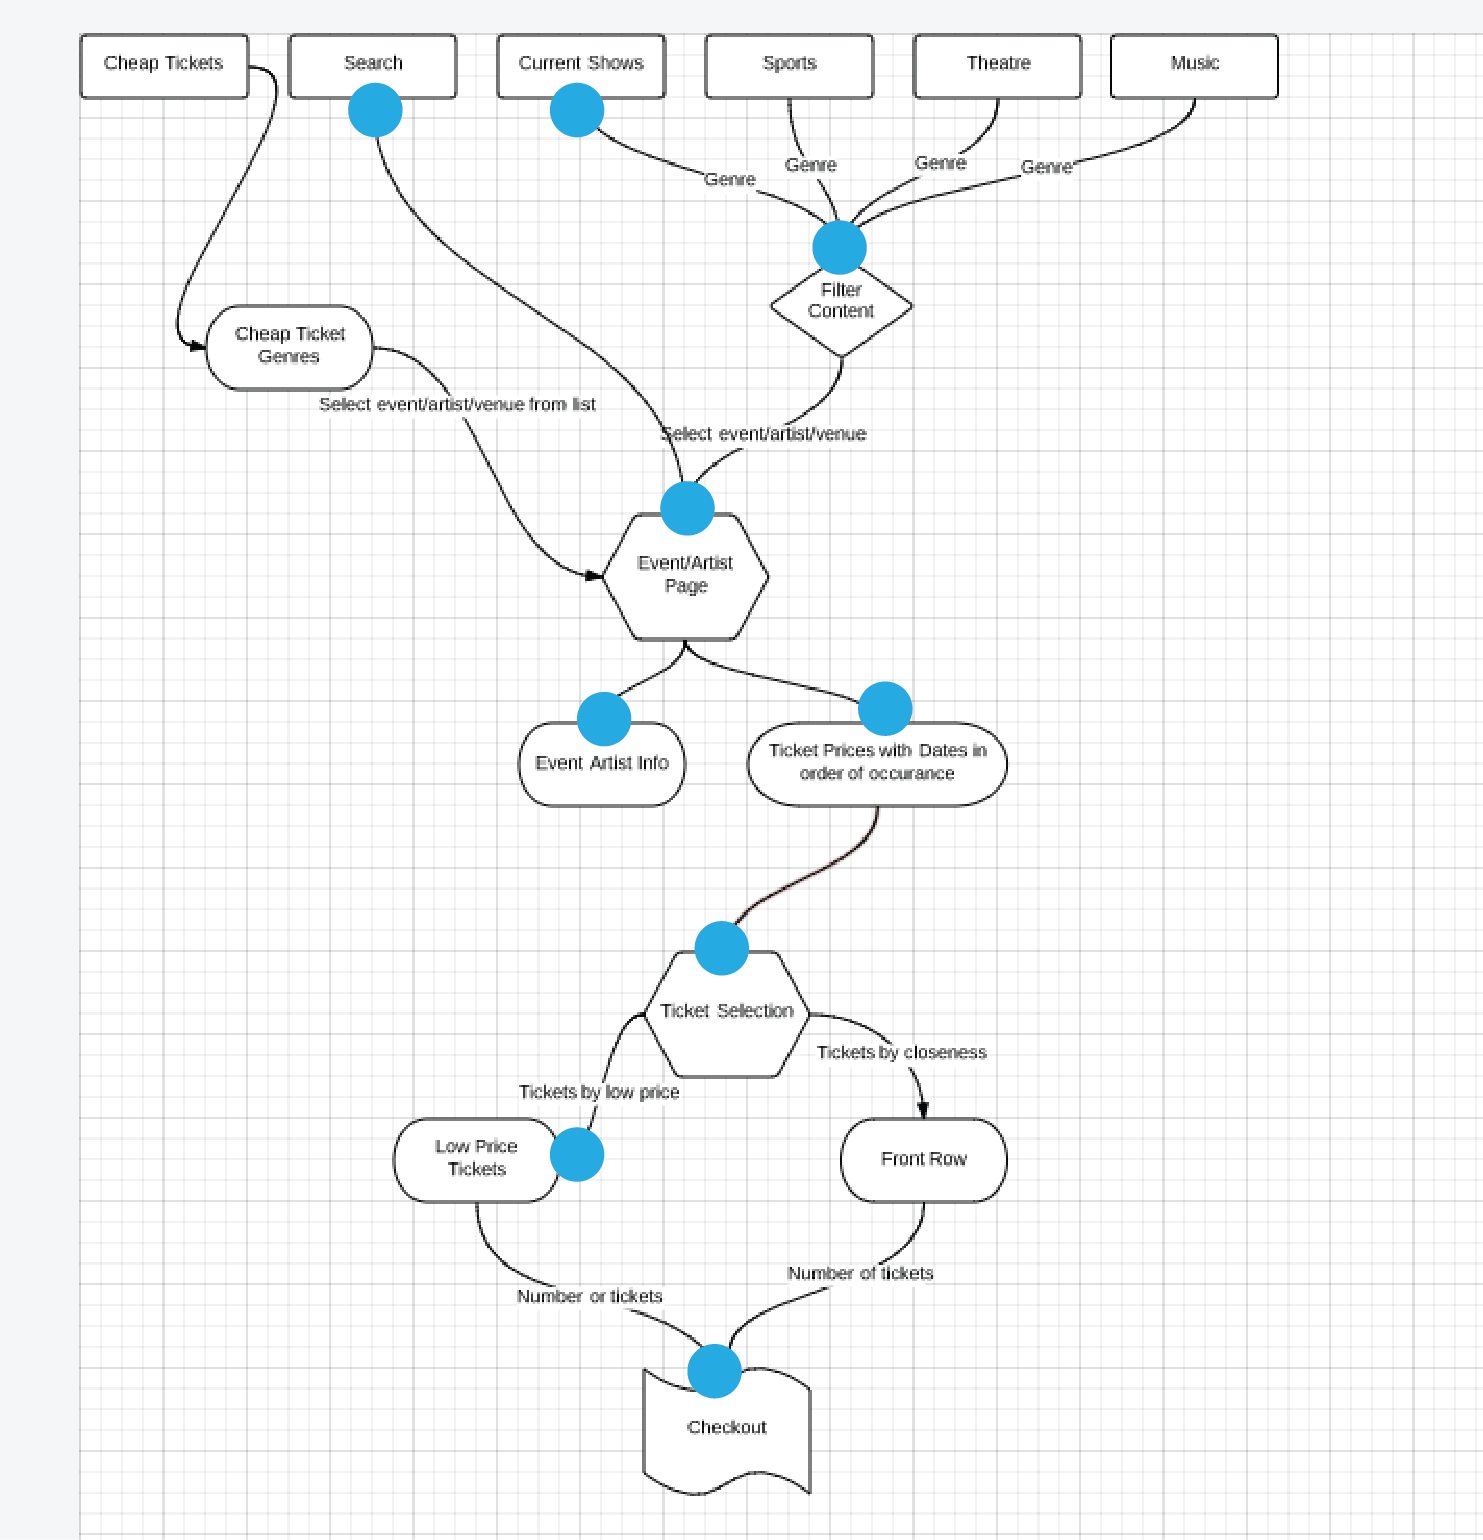 Ticket Master Information Architecture T Shirt Process Flow Chart Deeply Compares All Options Takes Notes On Paper As They Search For Prices Seat Locations Will Eventually Buy Tickets At The End Of